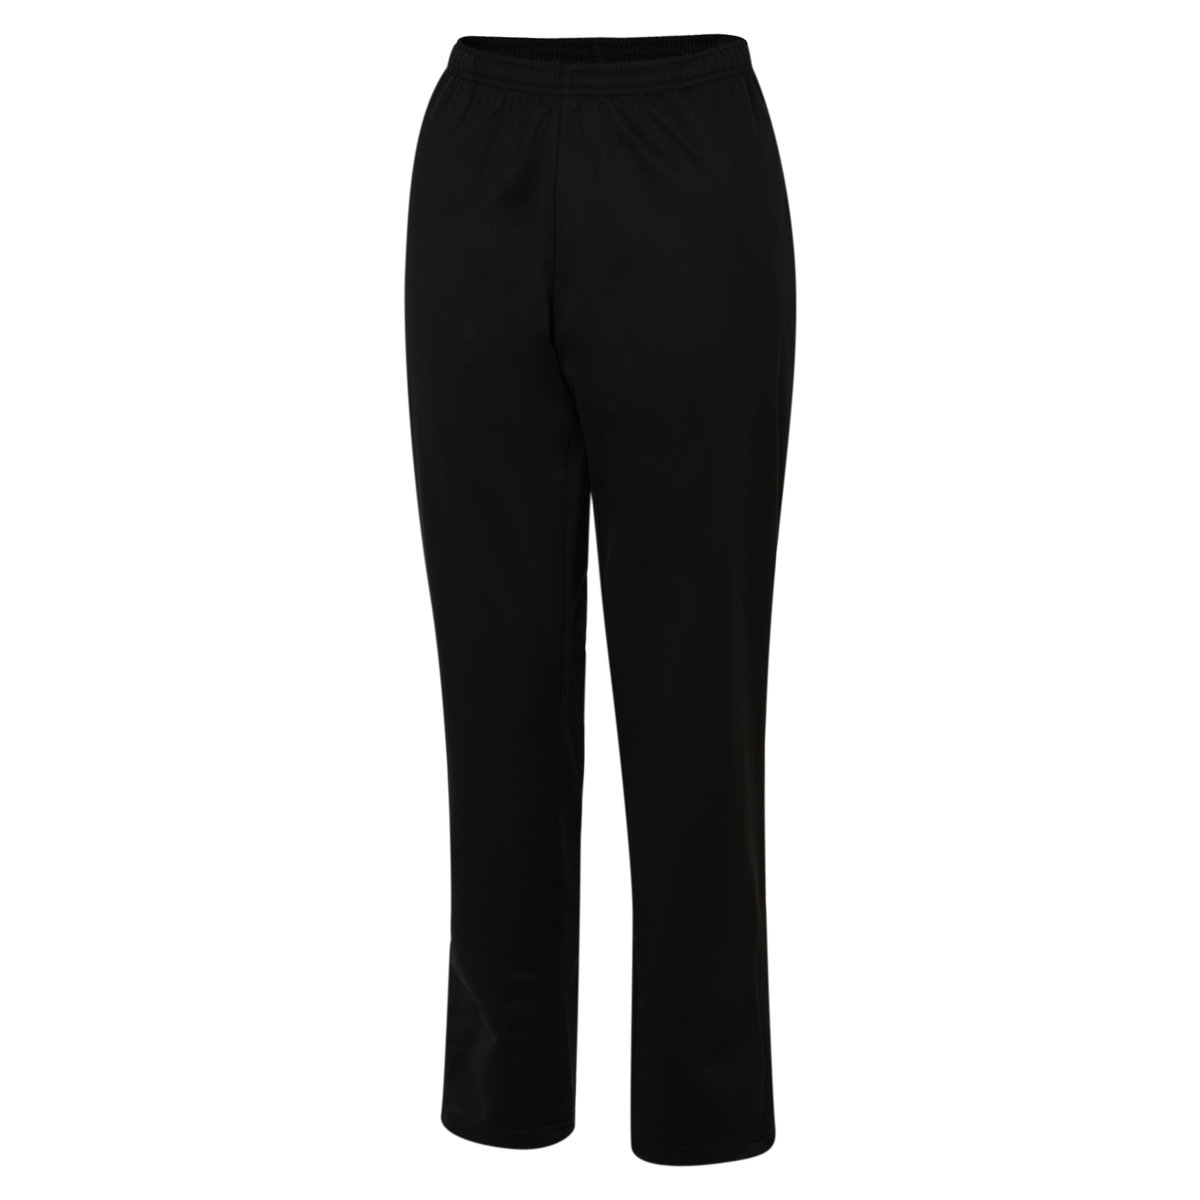 WOMEN'S CLUB ESSENTIAL POLY PANTS